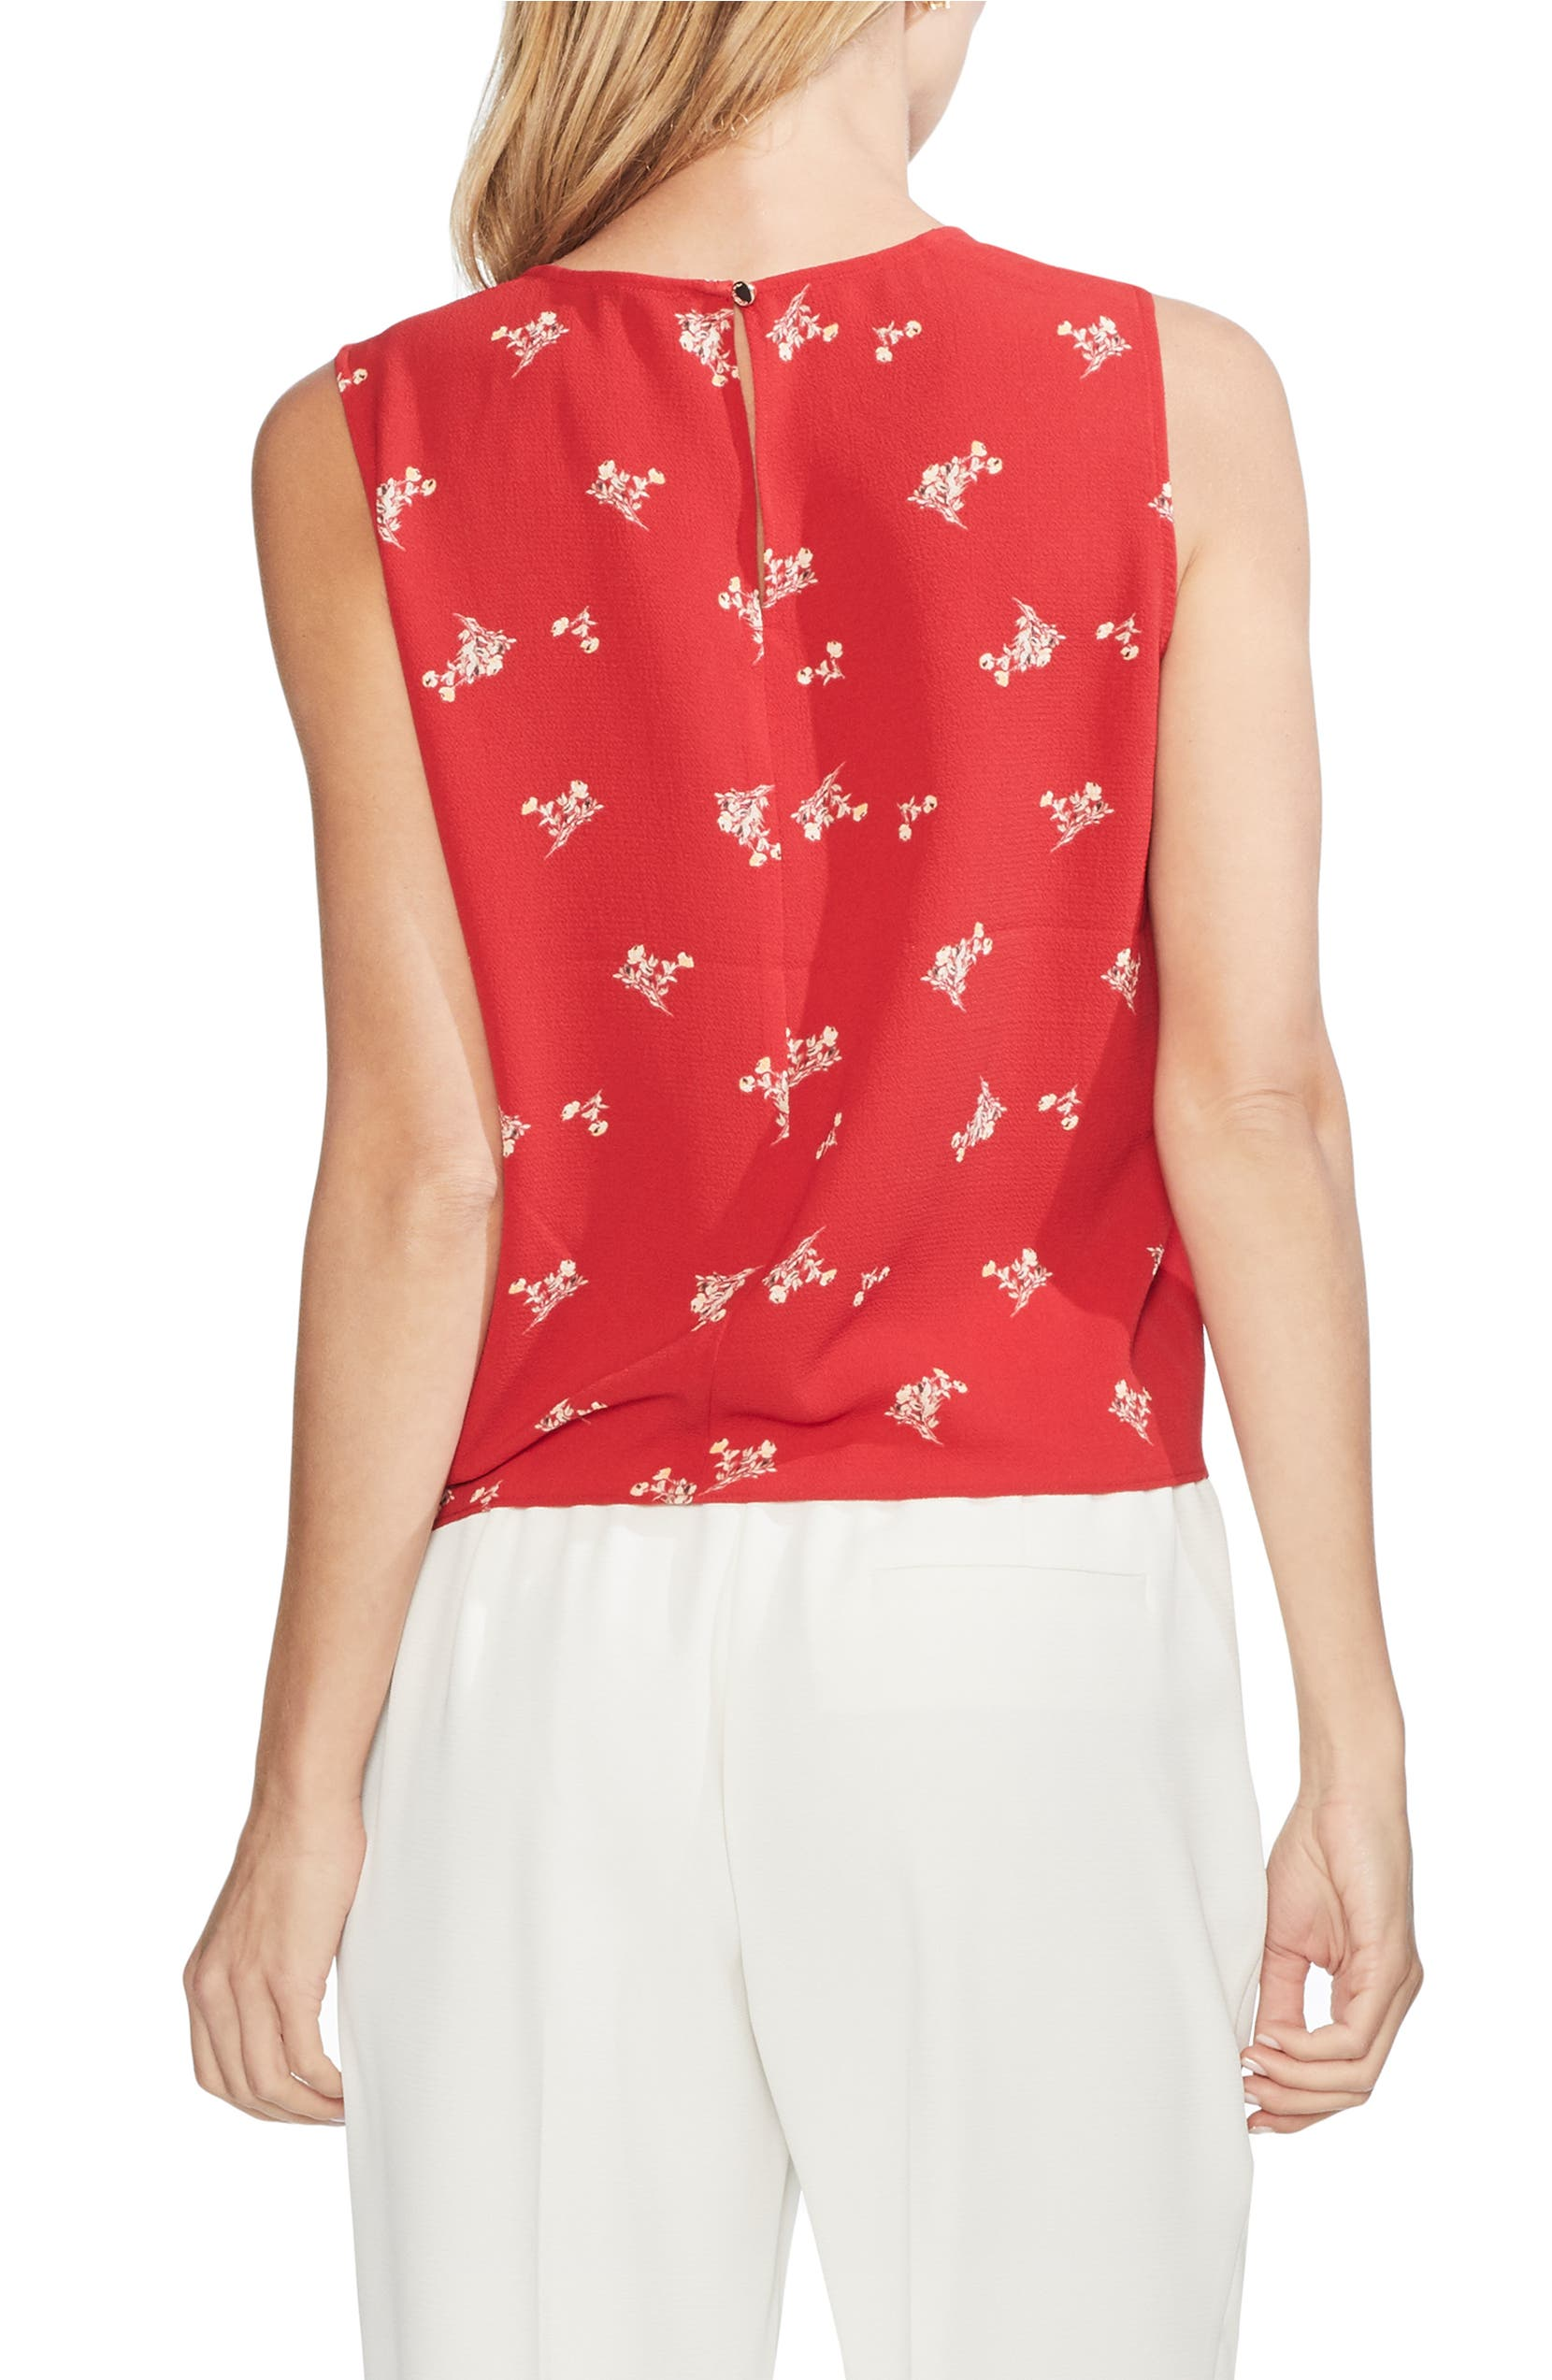 55dc9742bbb9f Vince Camuto Desert Bouquet Tie Front Sleeveless Top